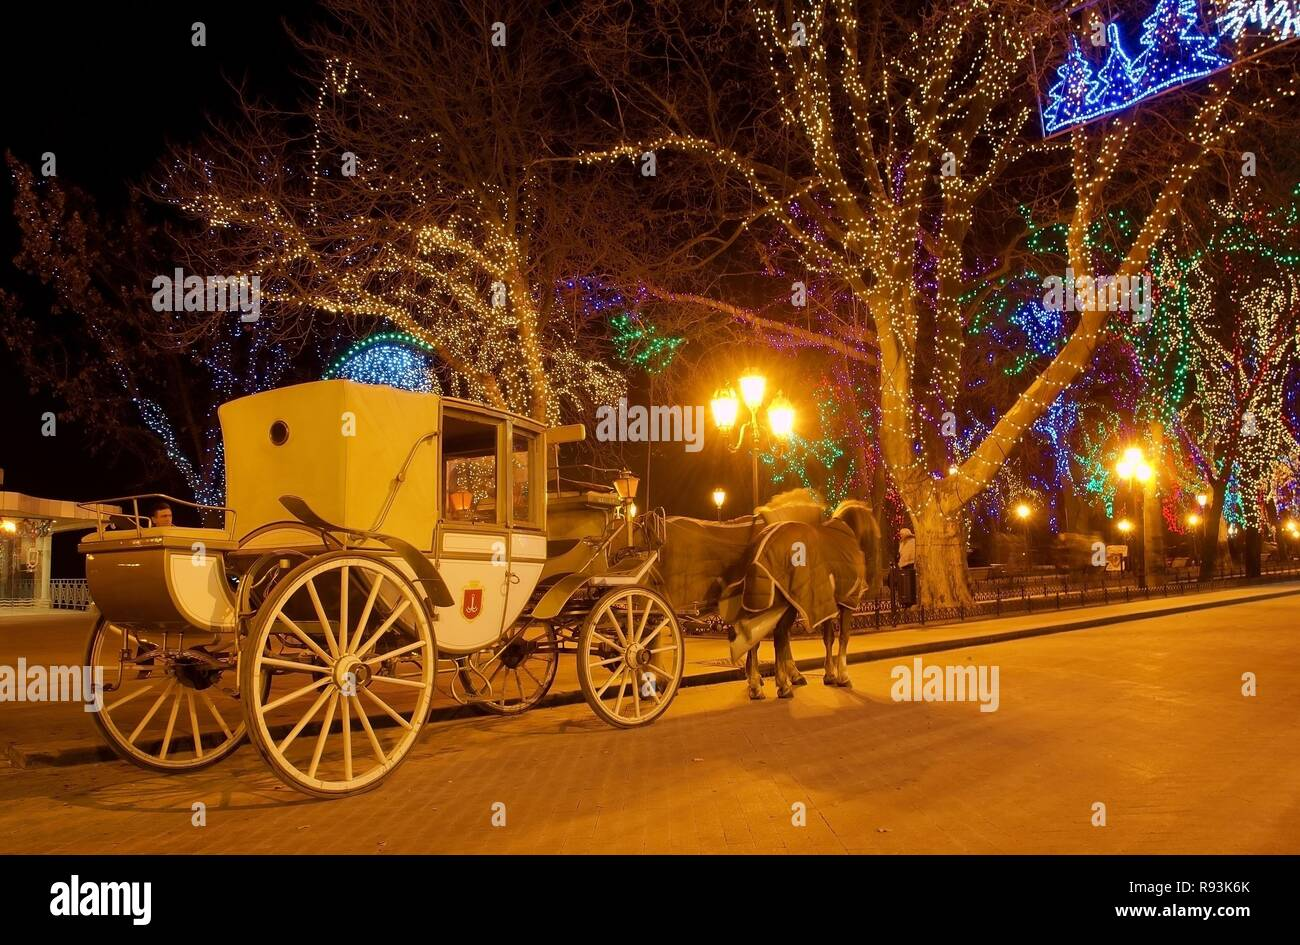 Horse Drawn Carriage And Christmas Decorations In Odessa At Night Odessa Odessa Oblast Ukraine Stock Photo Alamy